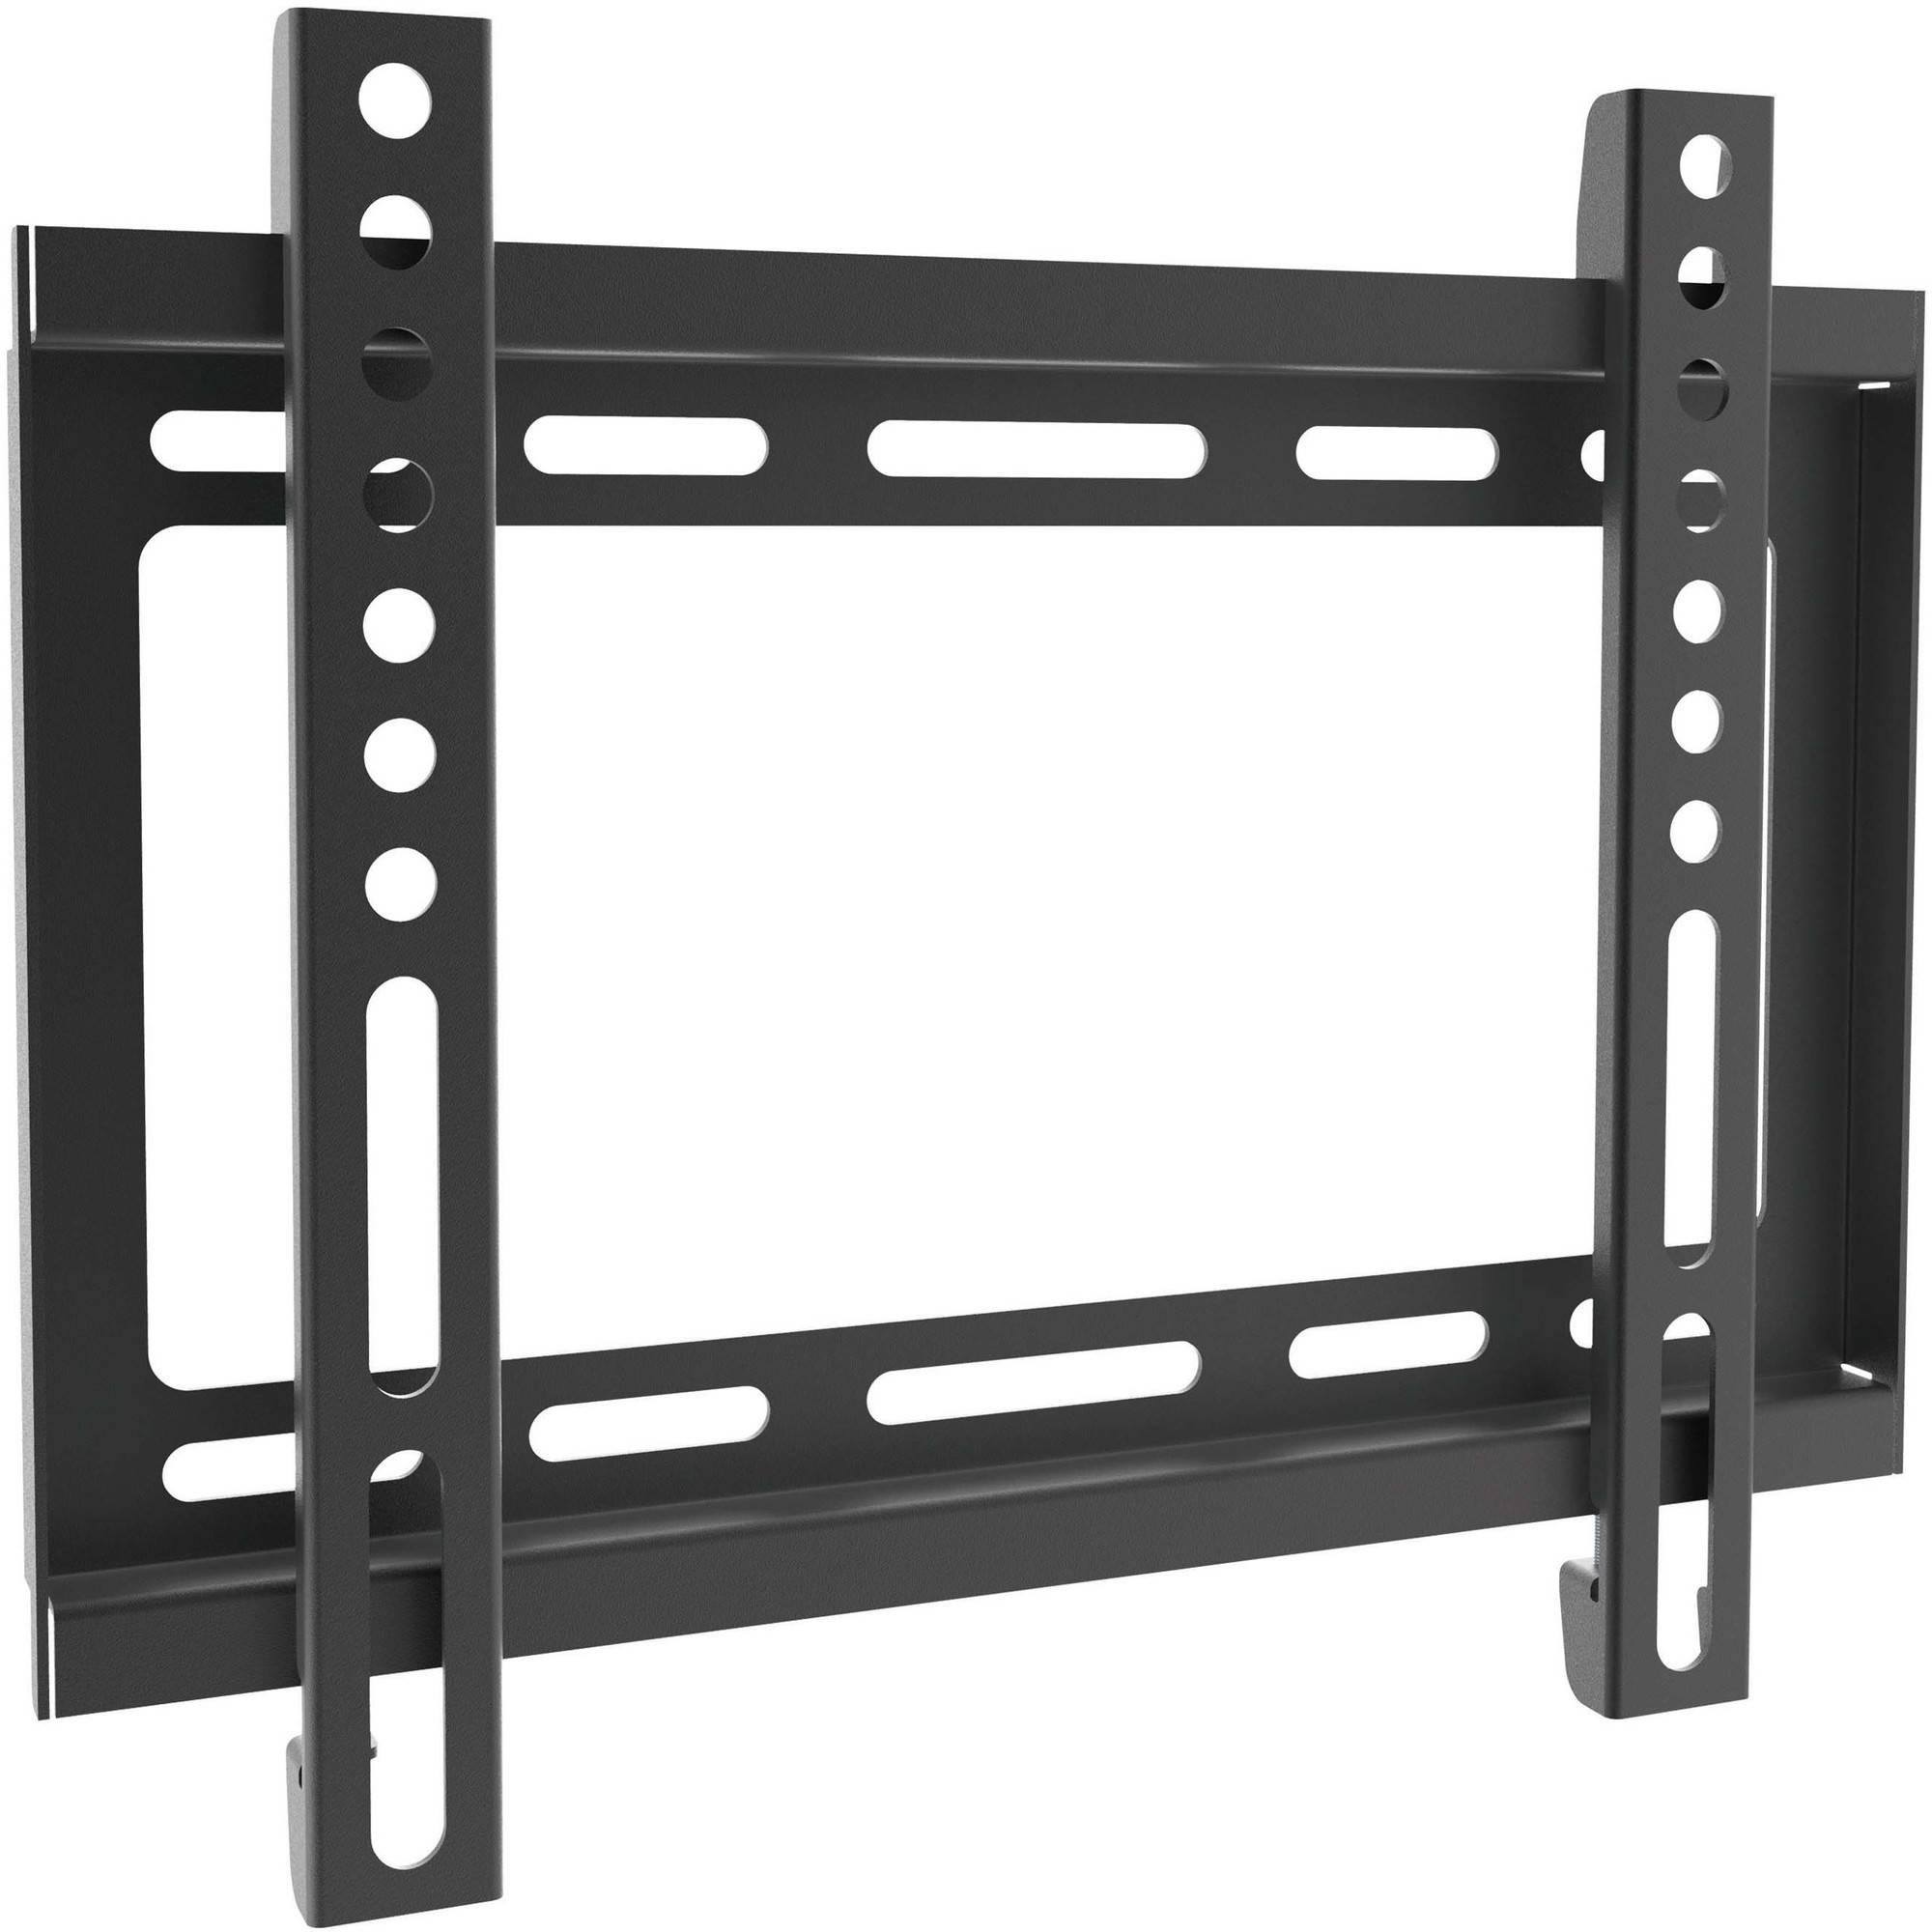 "ProHT 5436 Fixed VESA Wall Mount fits 23"" to 42"" LED/LCD TV, Black"